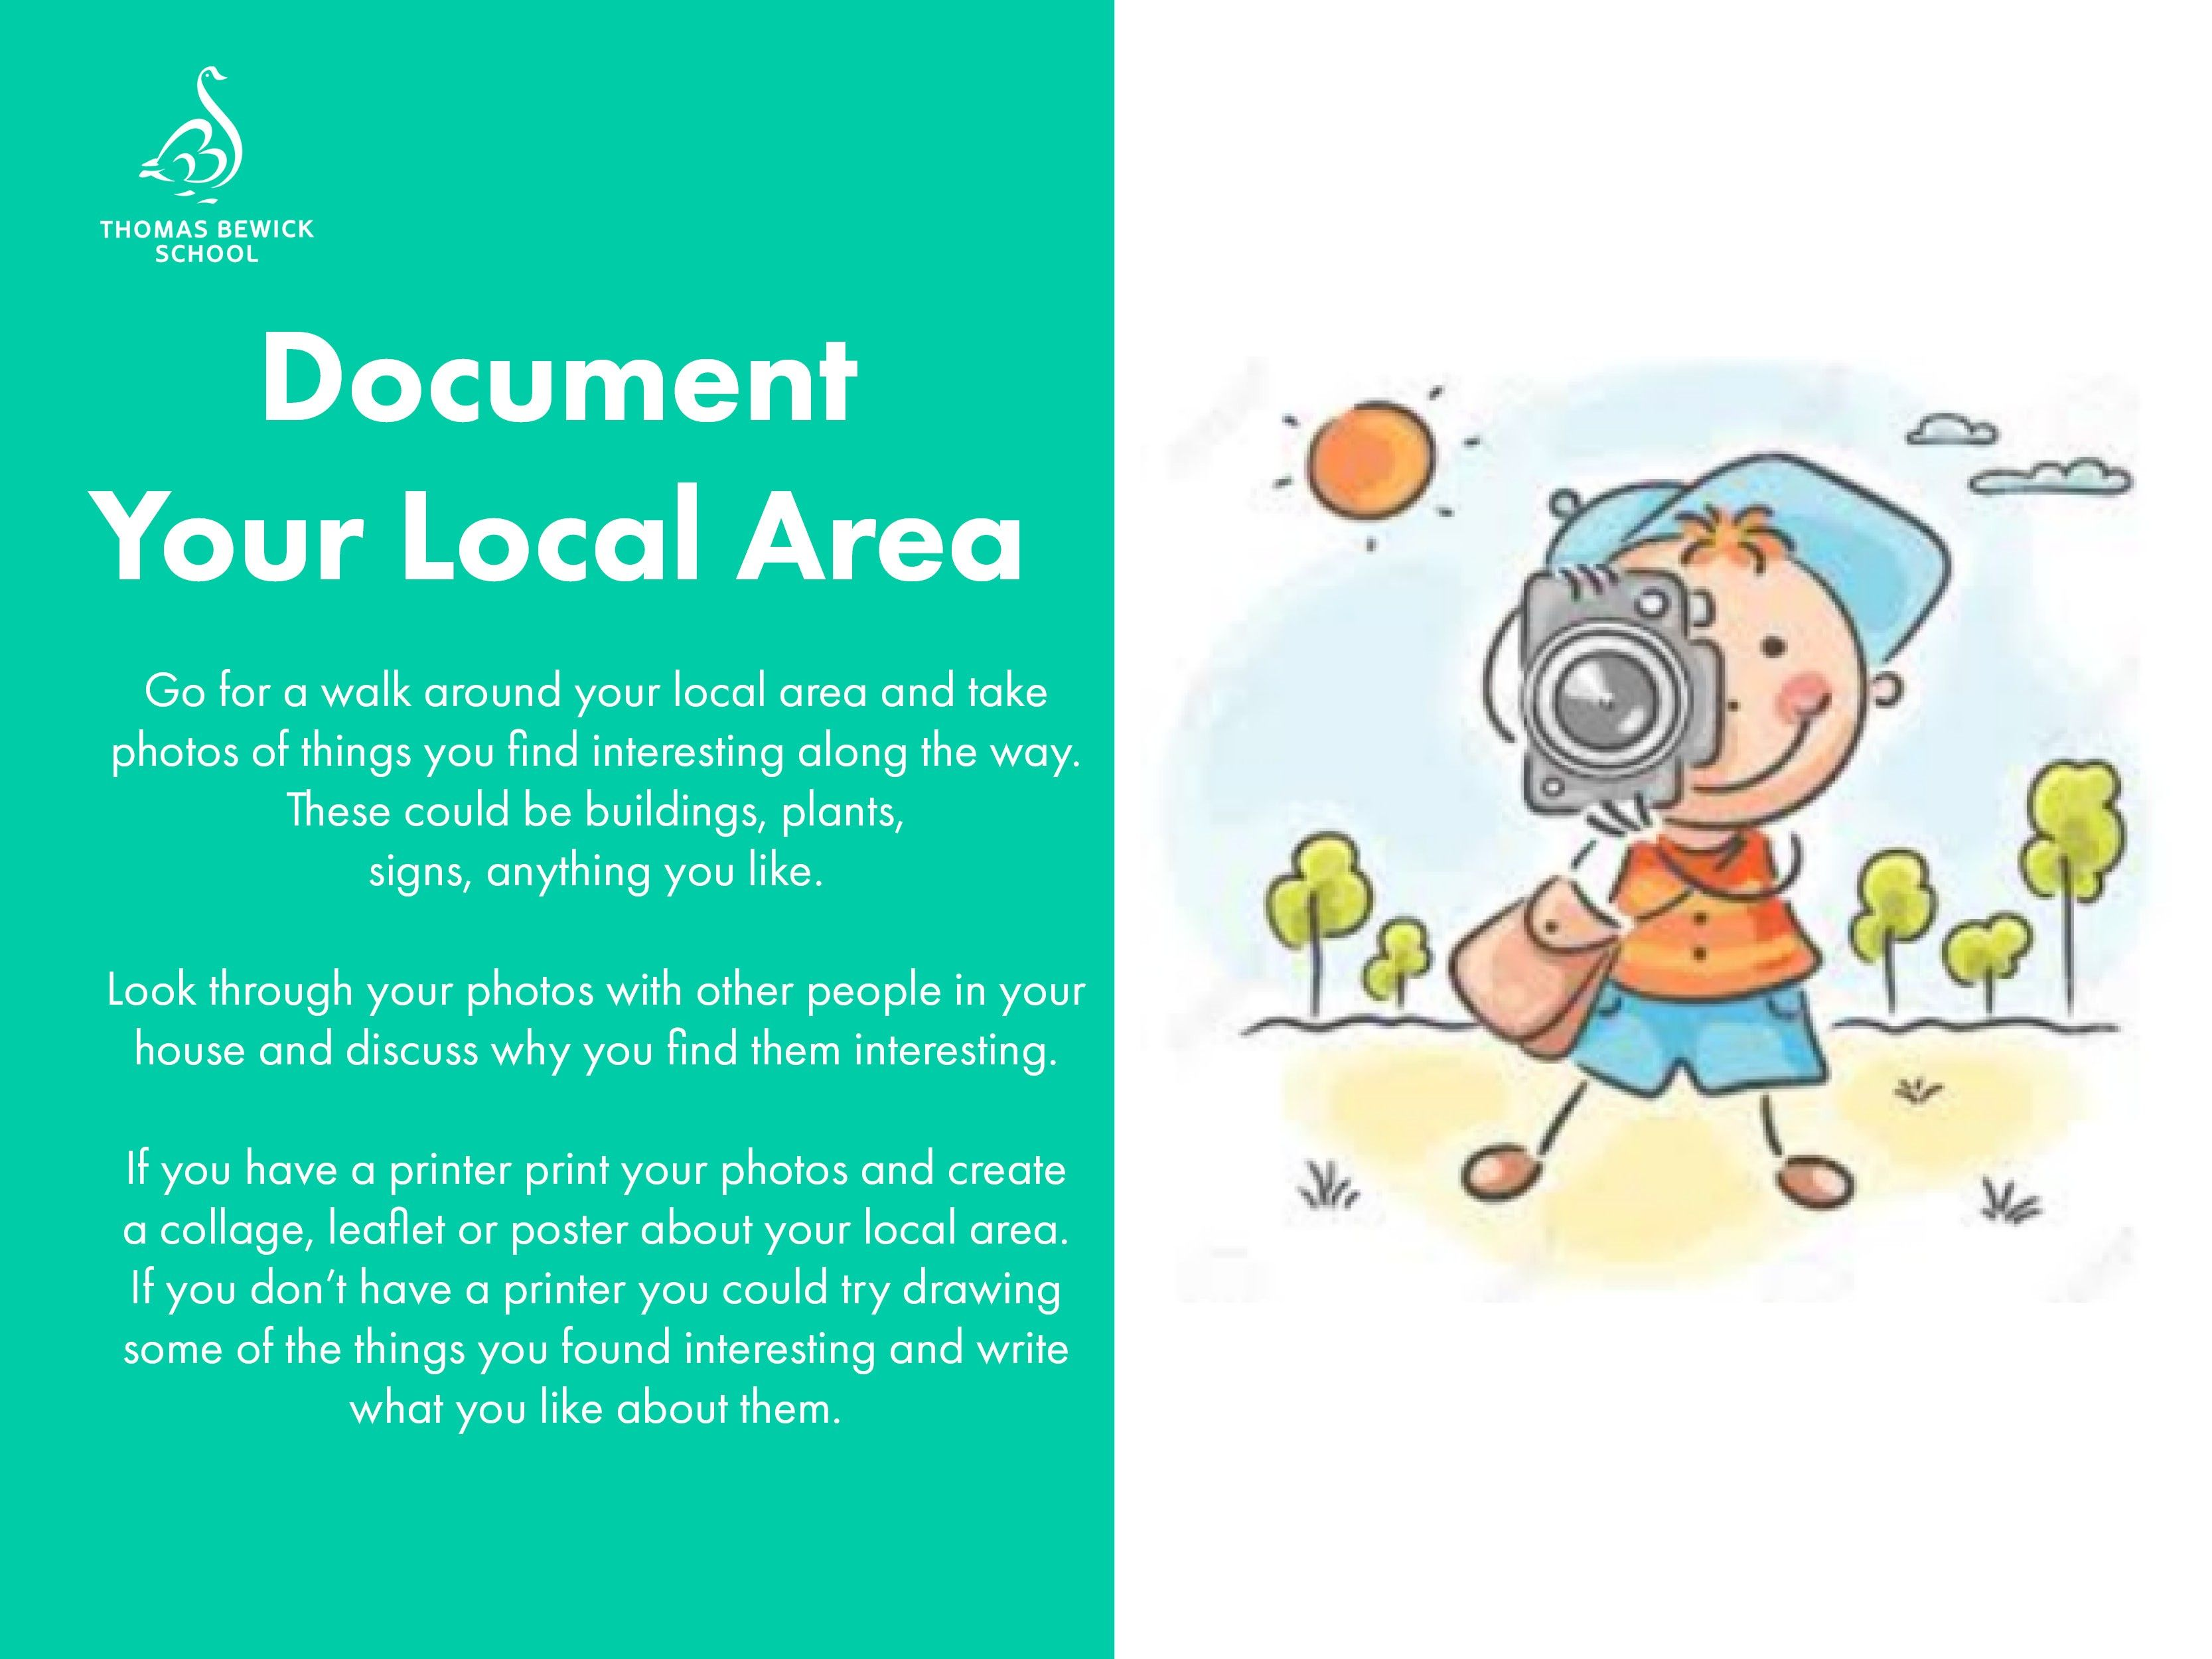 Document Your Local Area